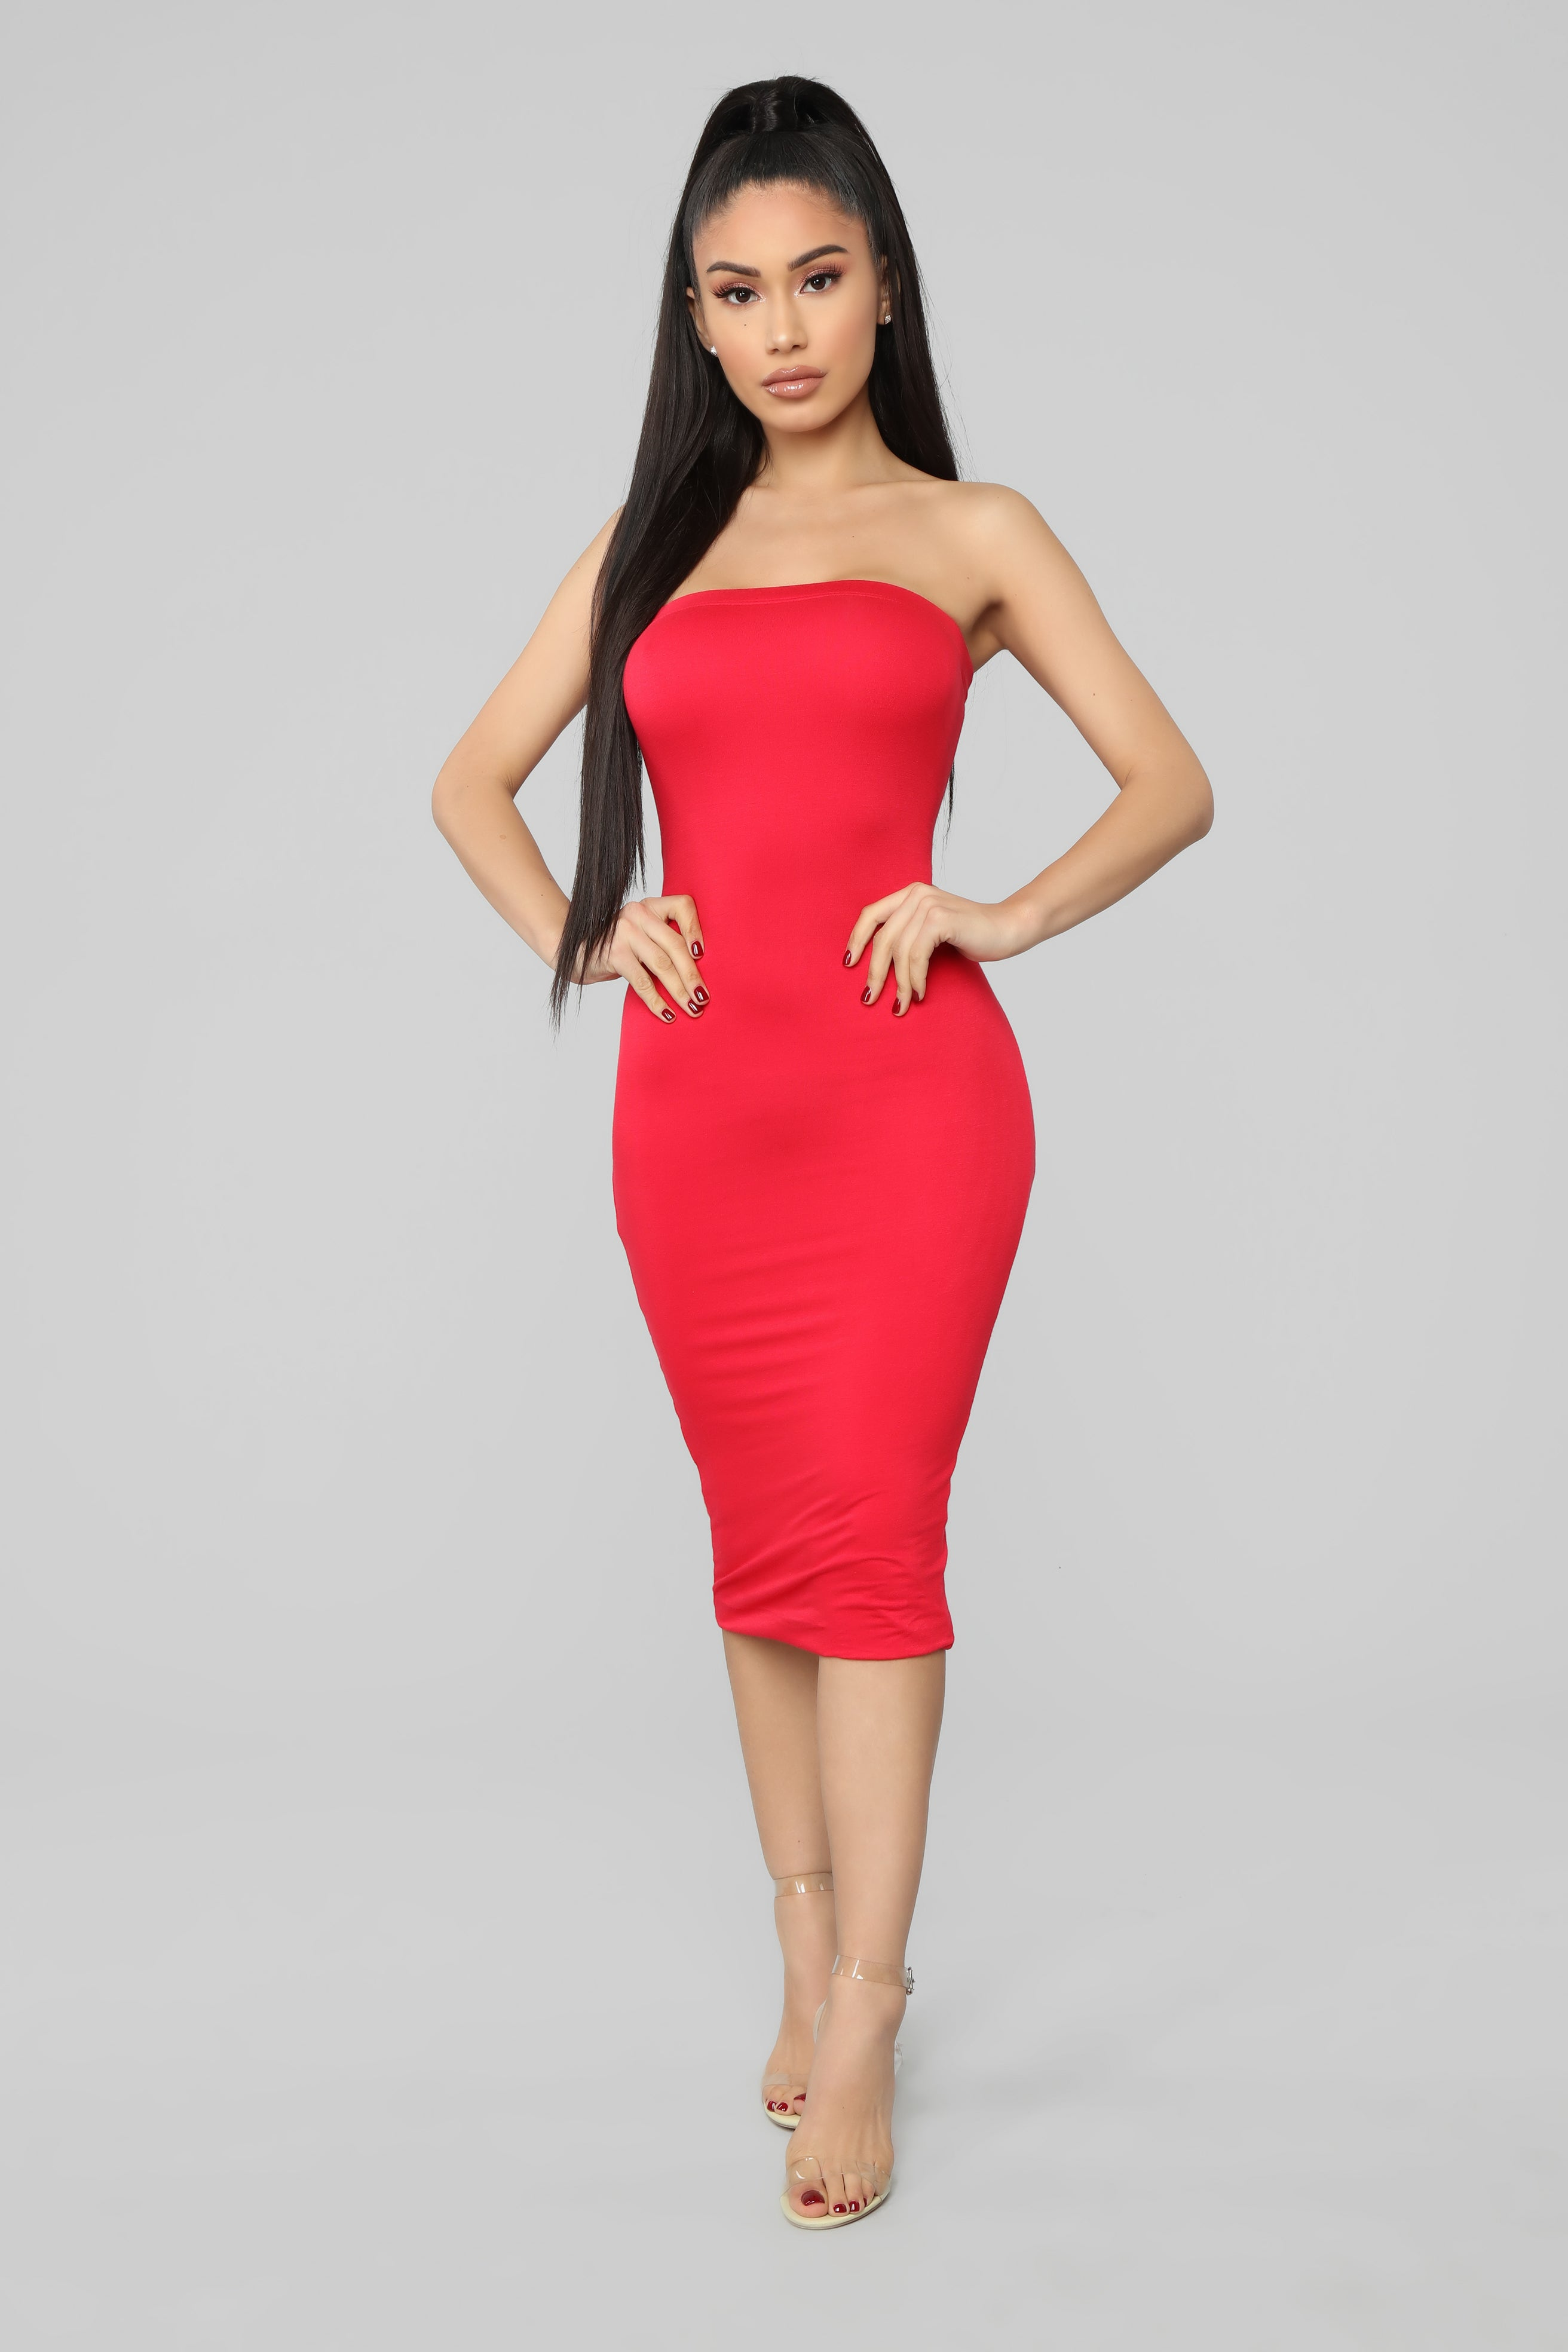 666396d88b2d9 https://www.fashionnova.com/products/officially-yours-dress-blush ...